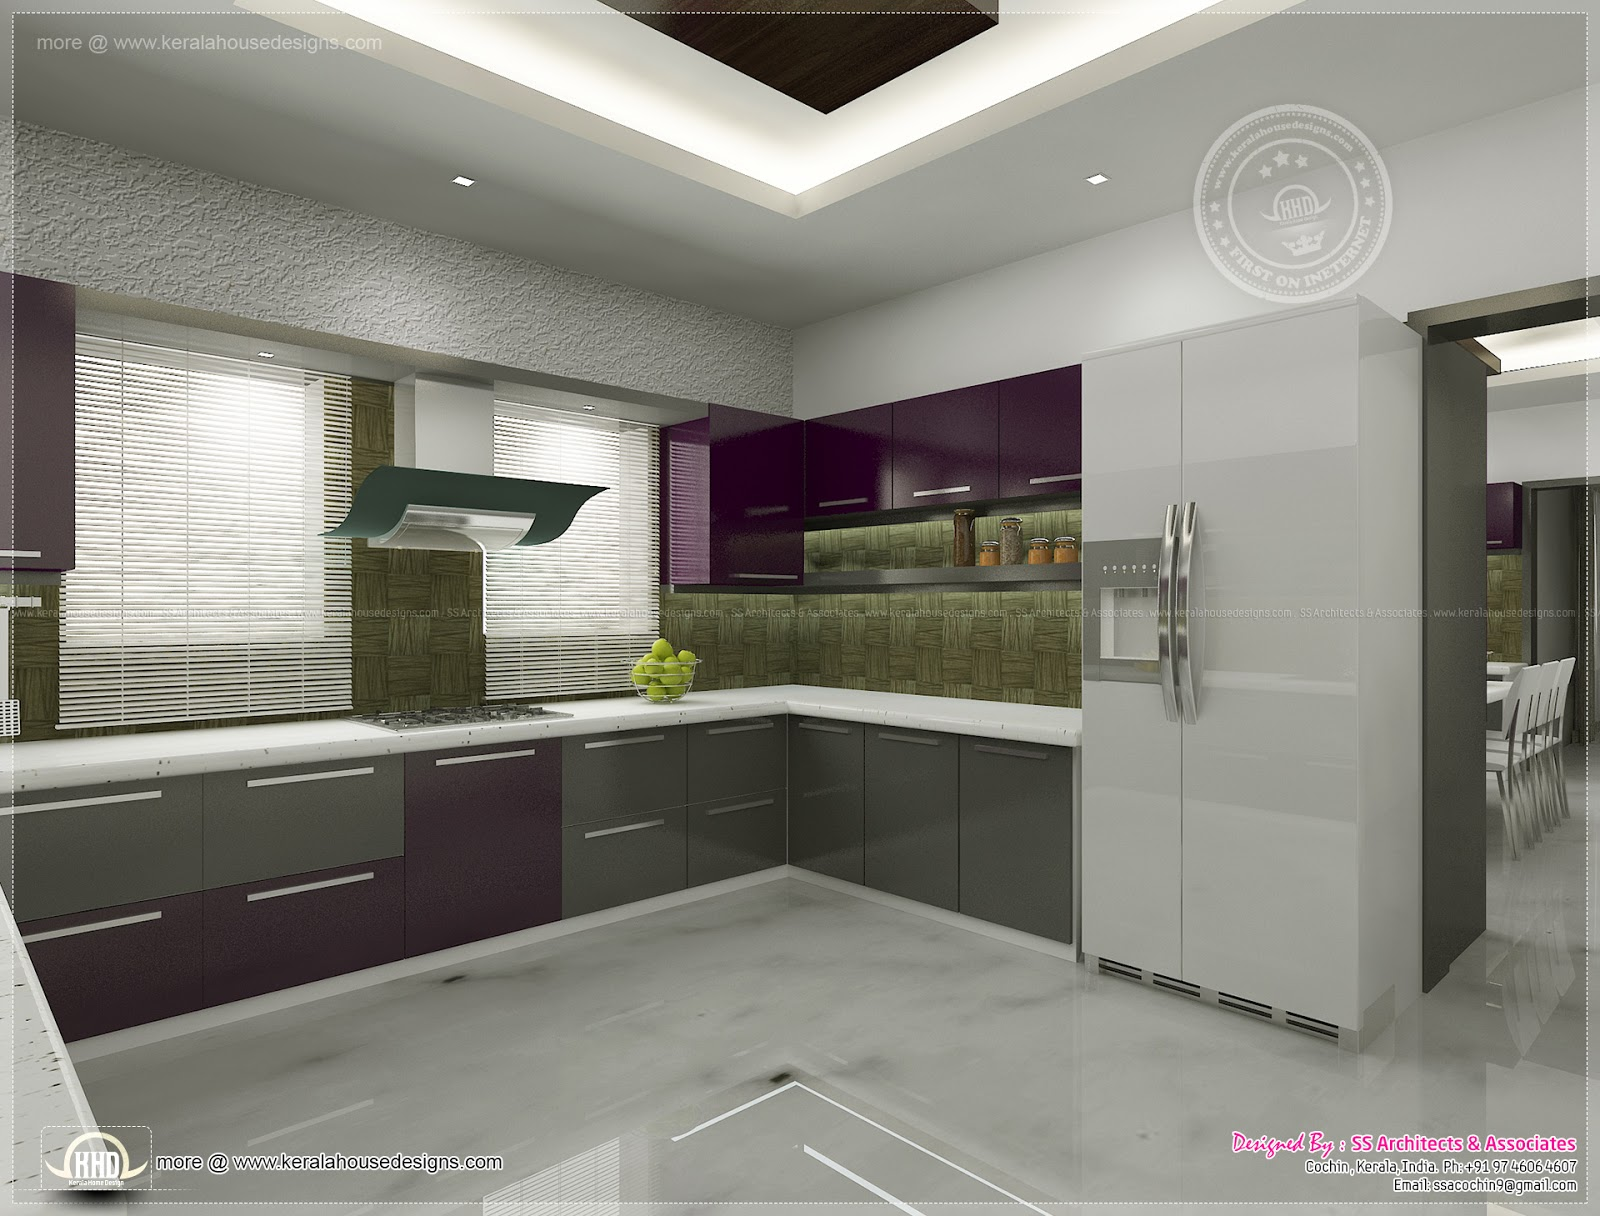 Kitchen interior views by ss architects cochin kerala for How to design a house interior